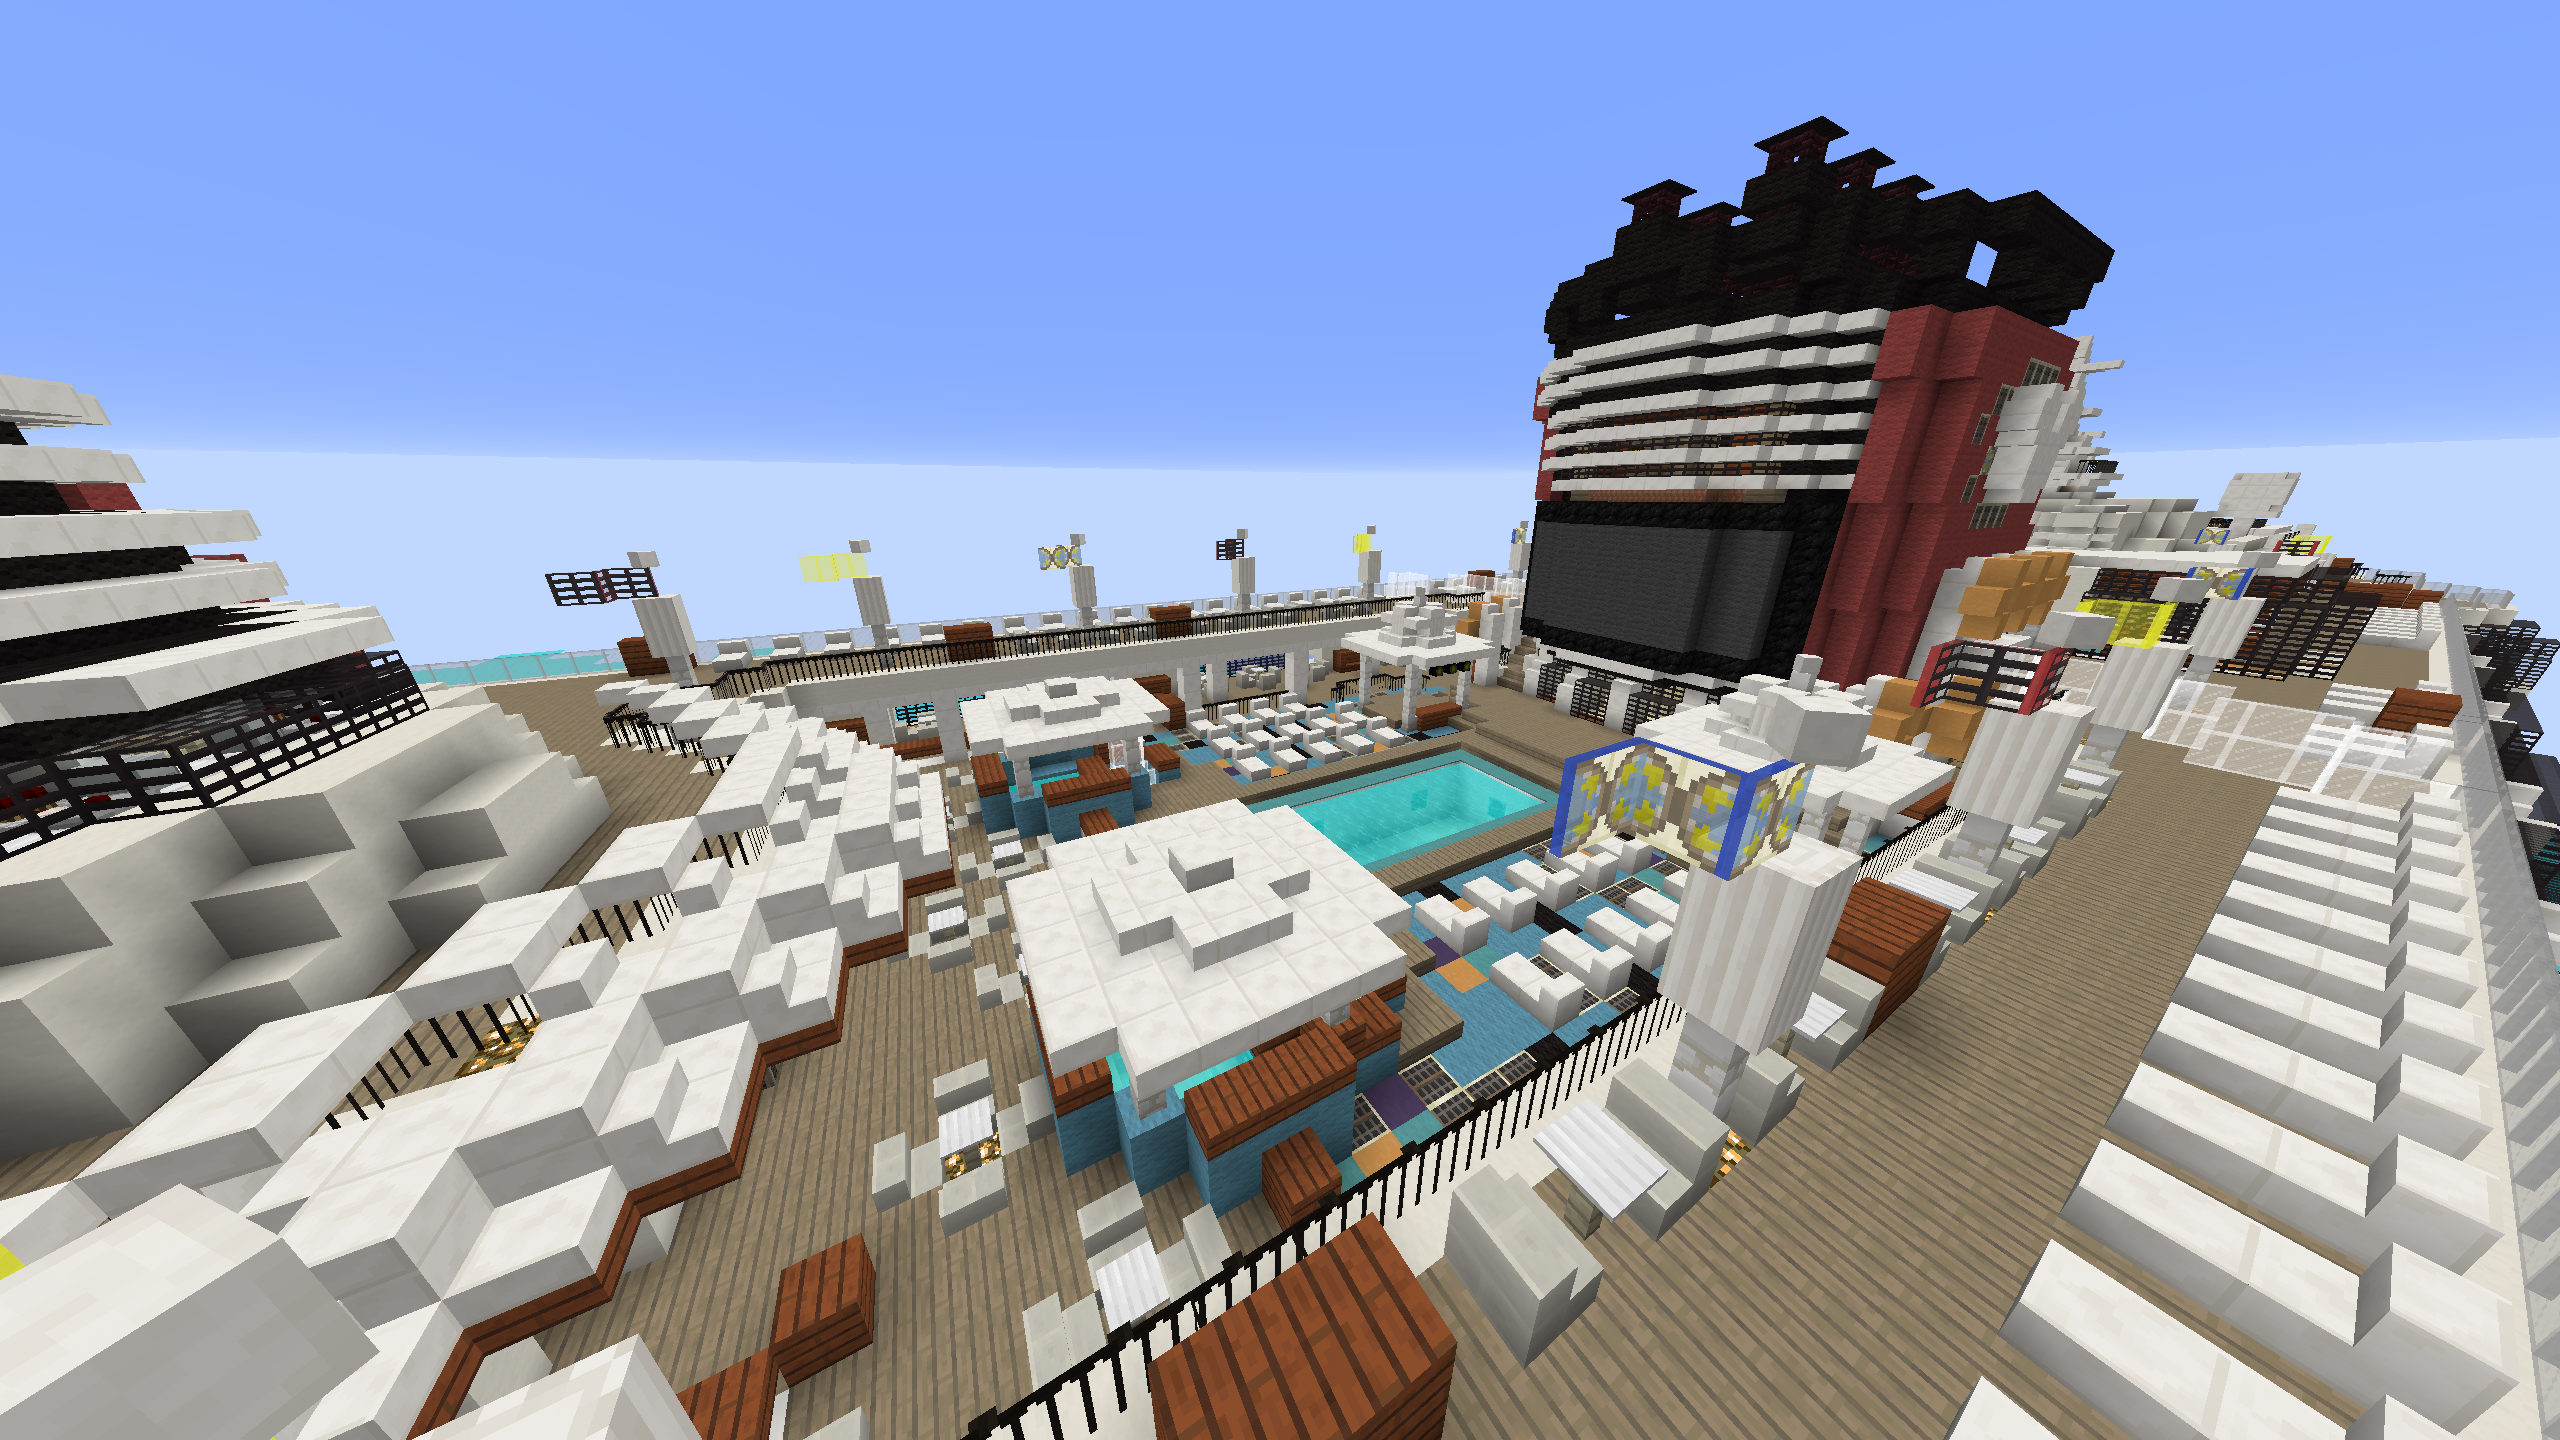 Minecrafter Builds Extremely Detailed Replica of Disney Cruise Ship